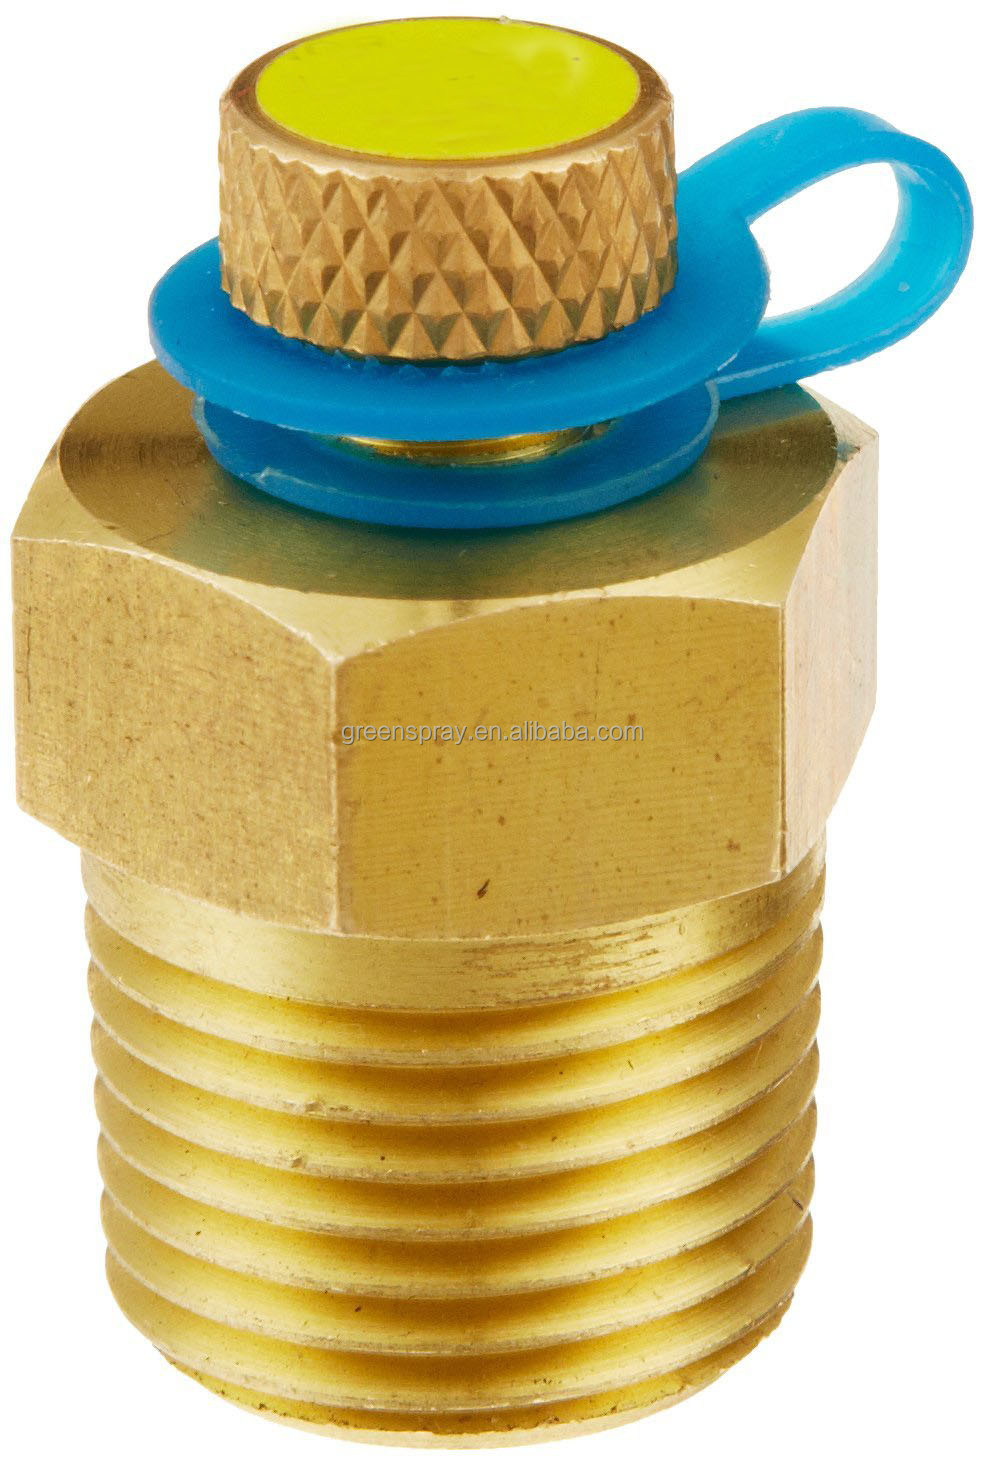 PIC Gauge PLUG Brass Test Plug 1/2 NPT/BSPT Connection Size 1000 psig at 200 F Maximum Operating Pressure